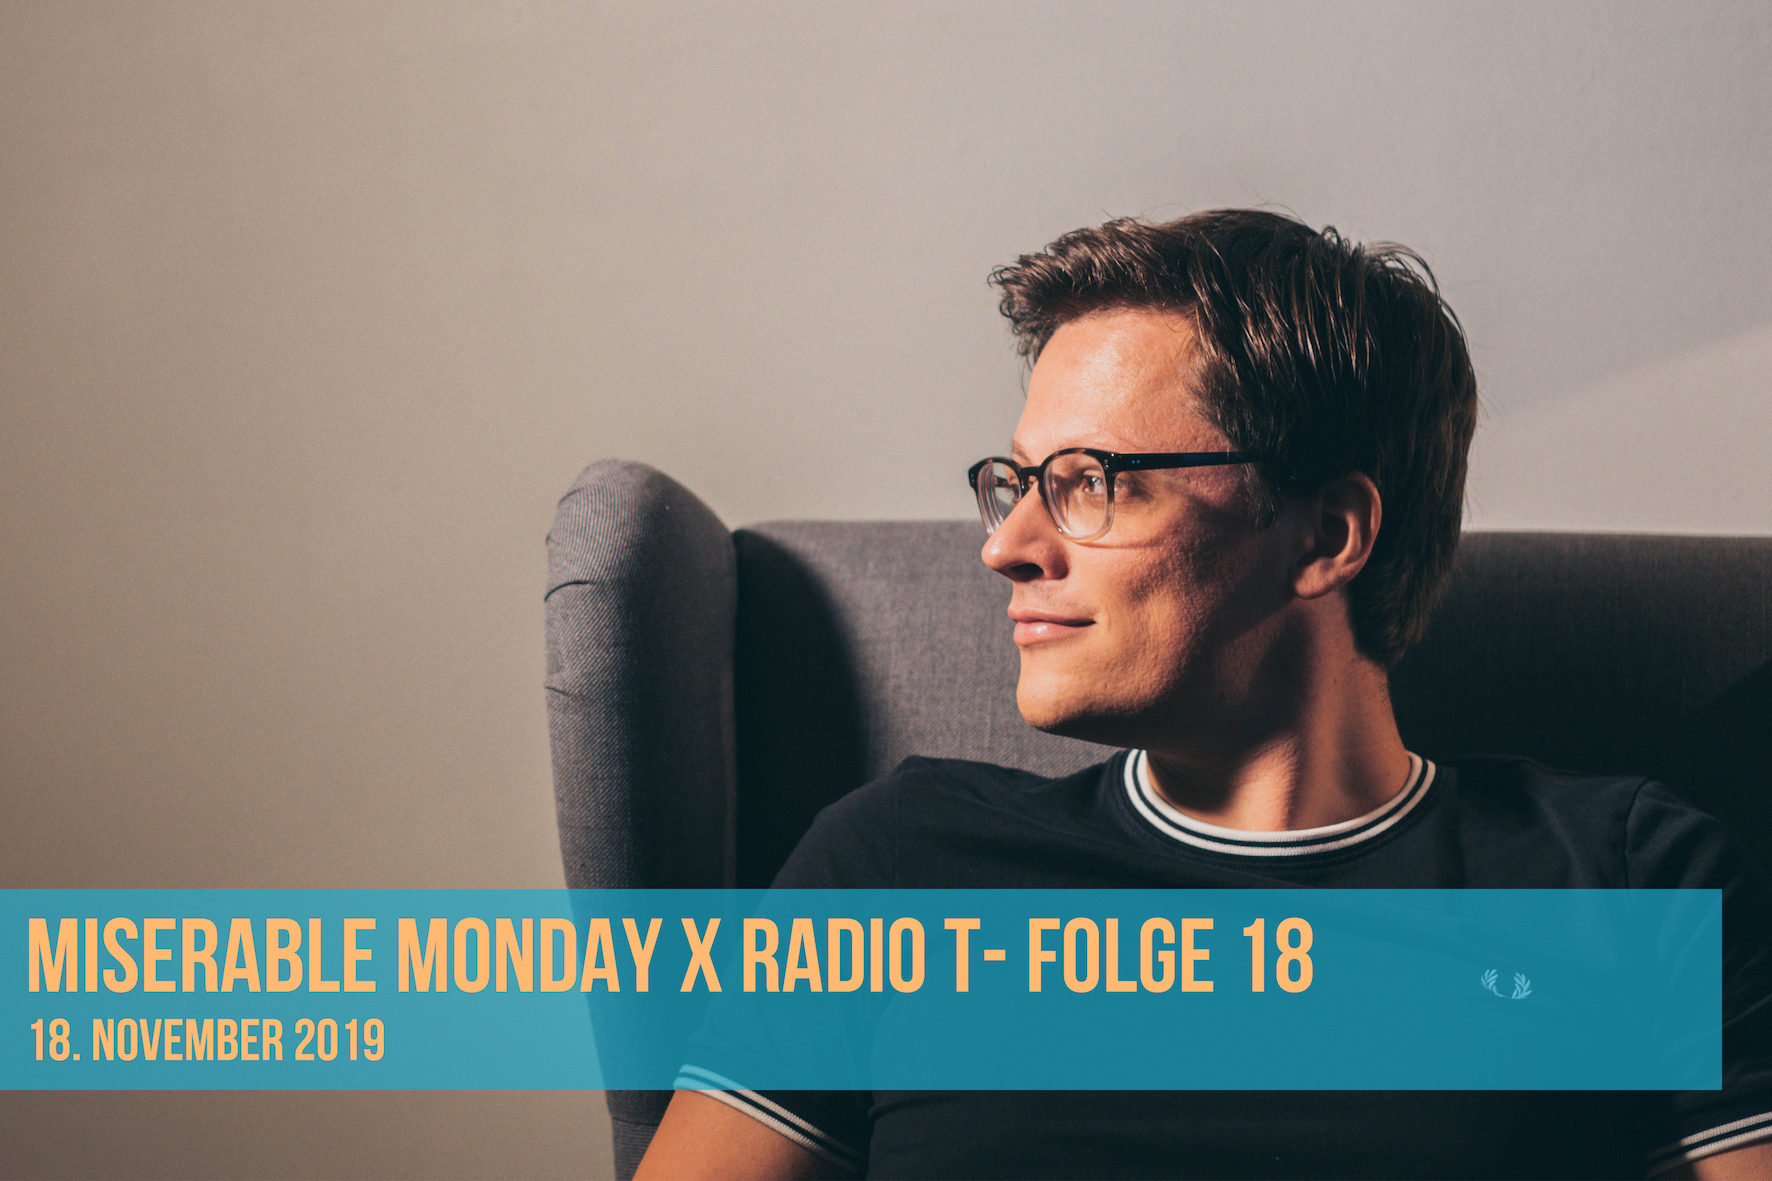 Martin Hommel, Miserable Monday, RadioT